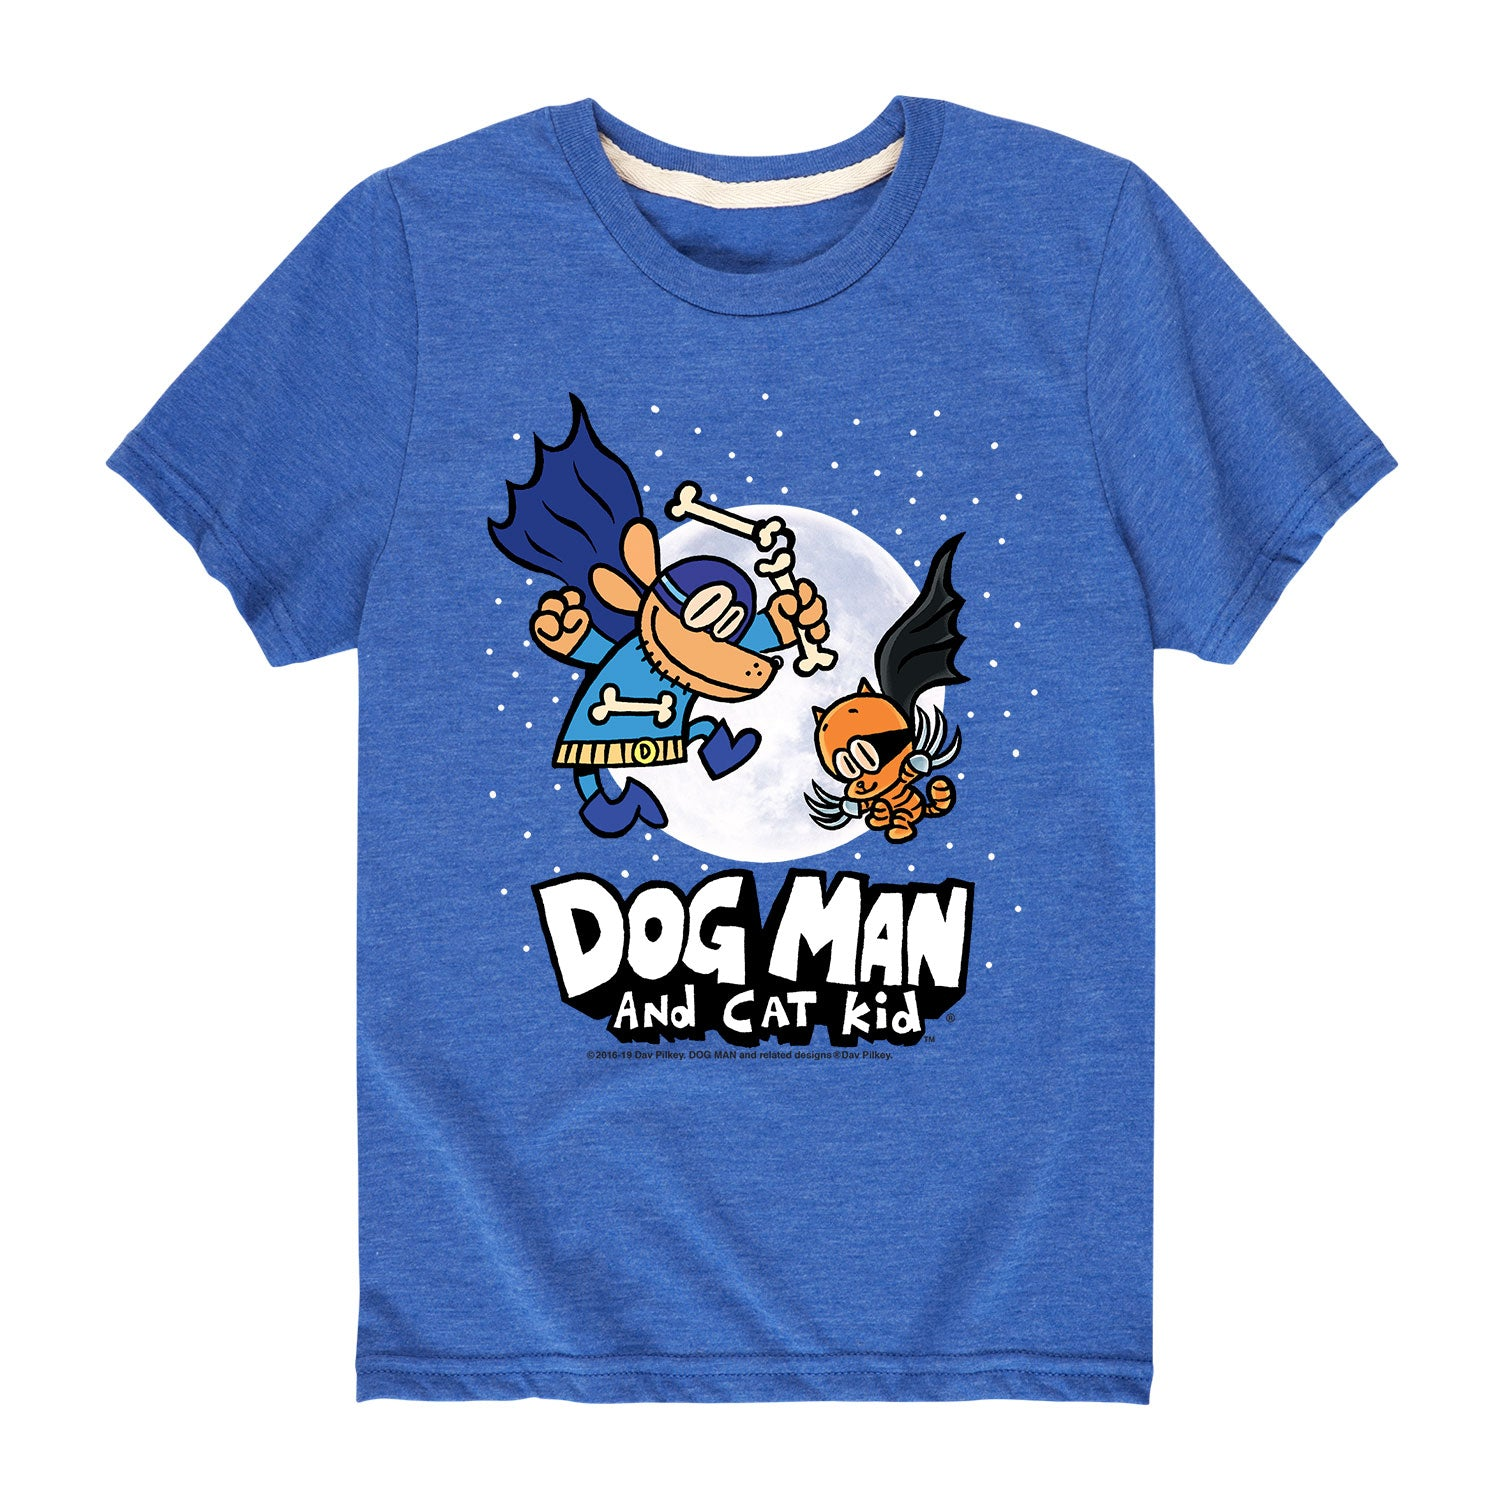 Dog Man and Cat Kid Moon - Youth & Toddler Short Sleeve T-Shirt